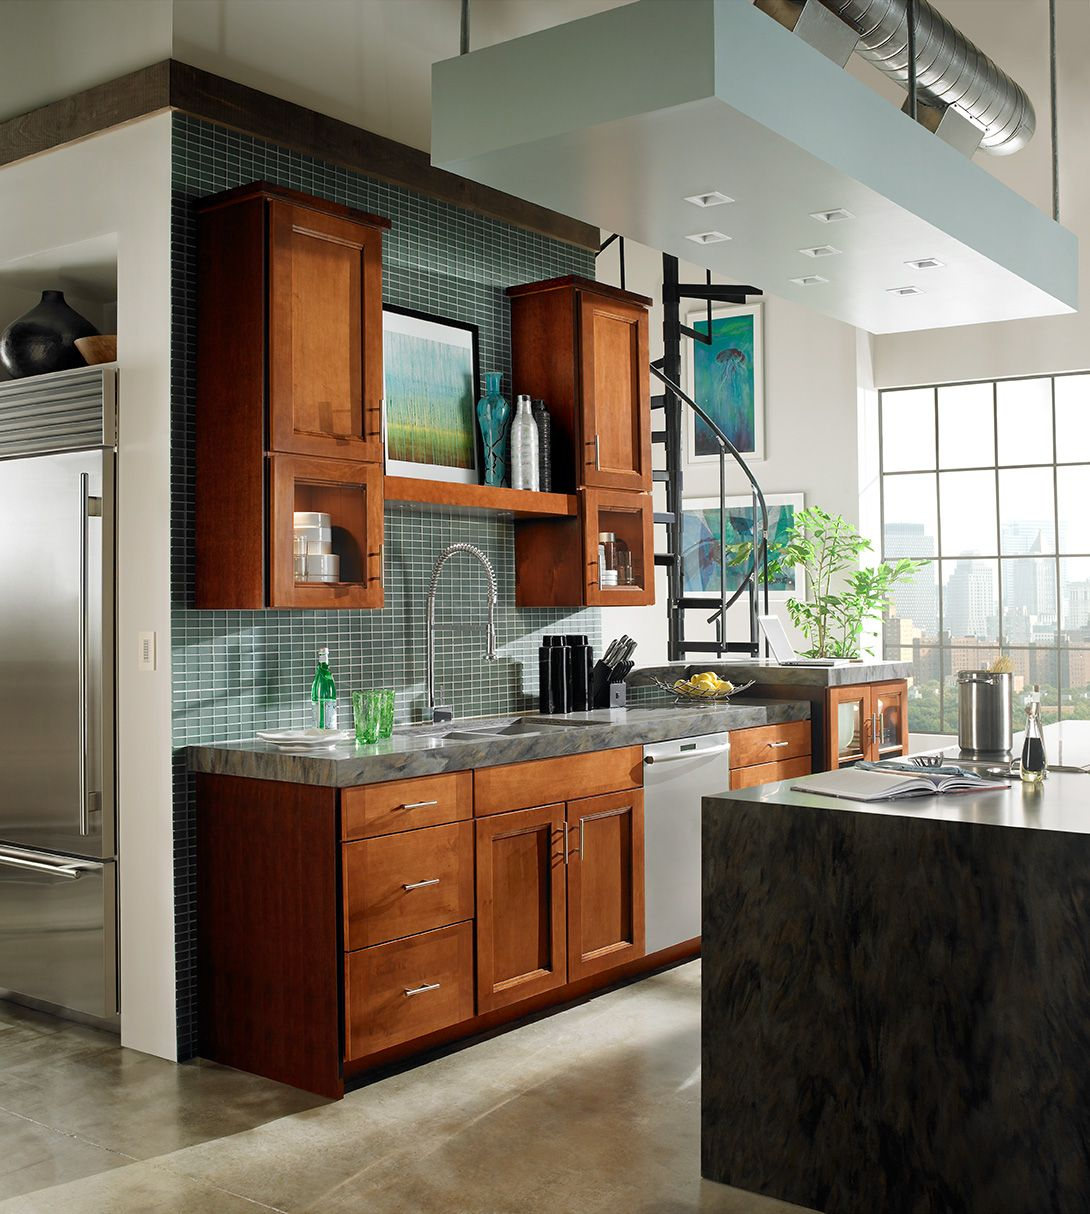 Time To Remodel Your Kitchen Call American Construction Plumbing In Fort Myers Fl For Your Free Estimate T Kitchen Design Small Kitchen Design Loft Kitchen